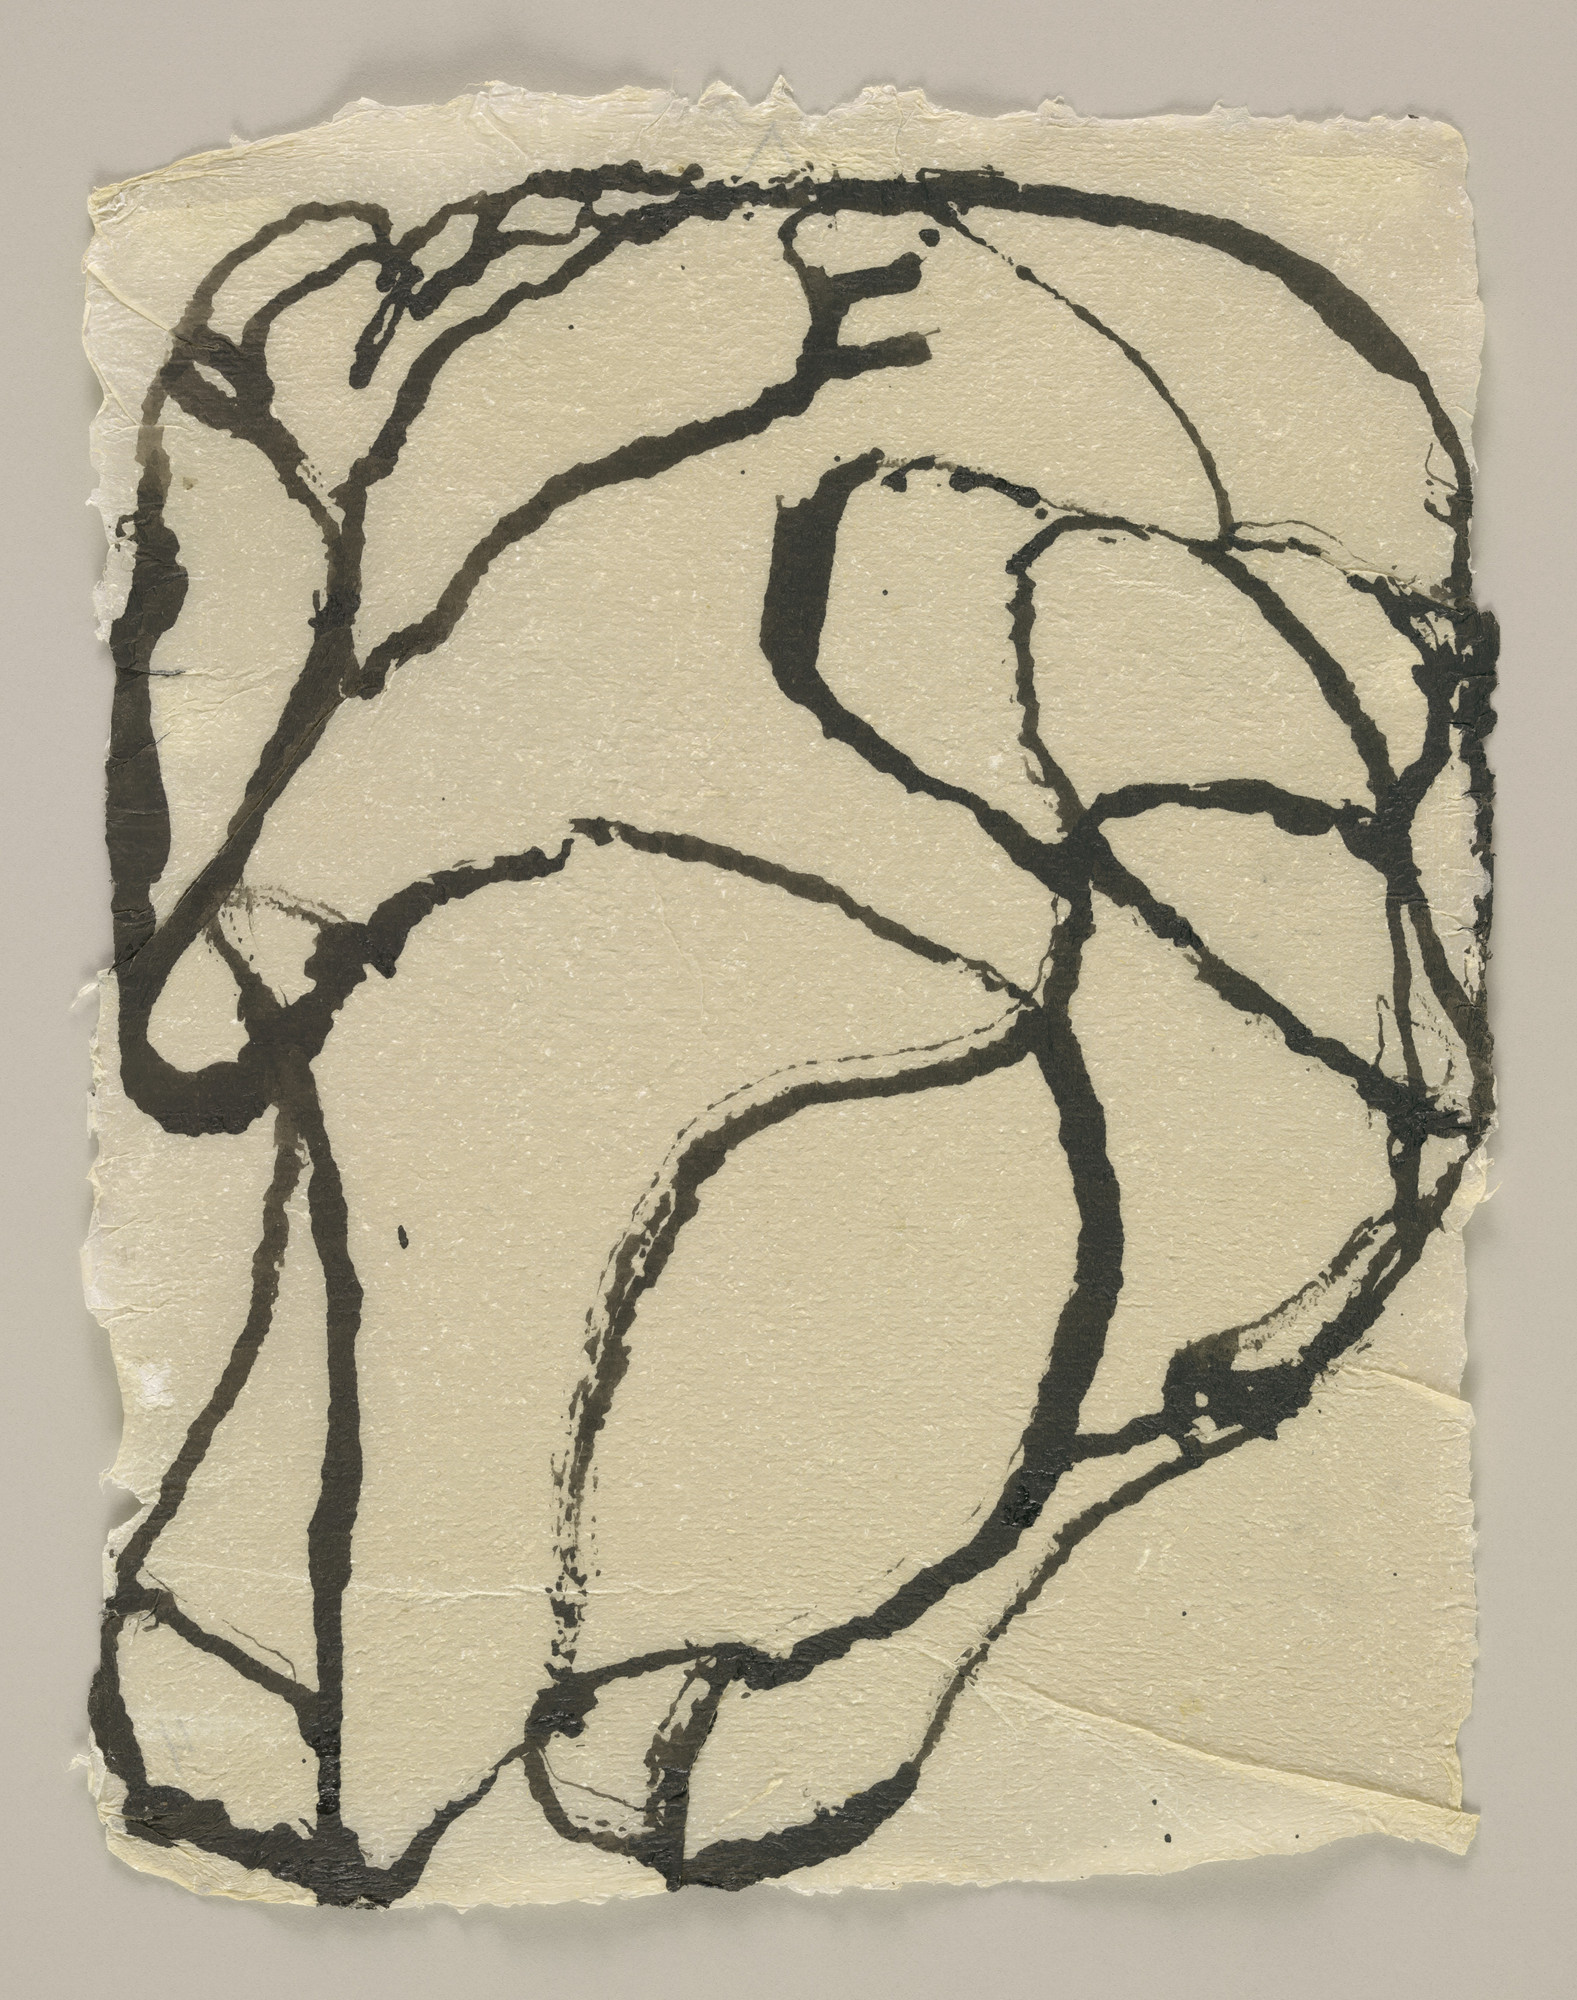 Brice Marden. 4 Howell Paper Drawings. 1996